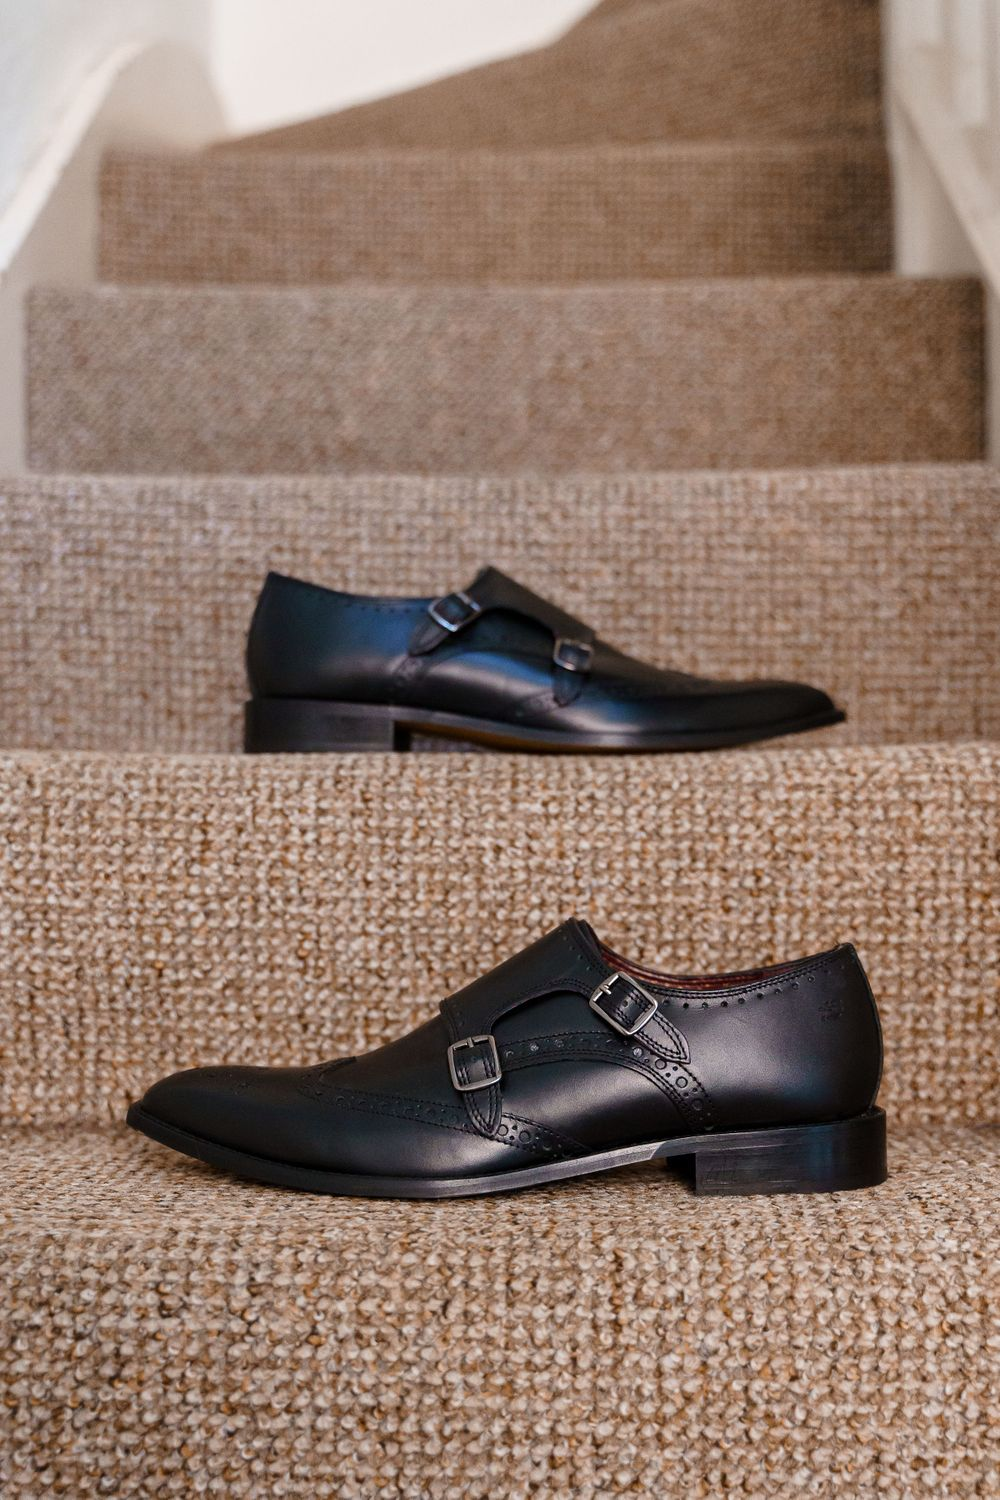 Men's black wedding shoes on a staircase - Hampshire wedding photography